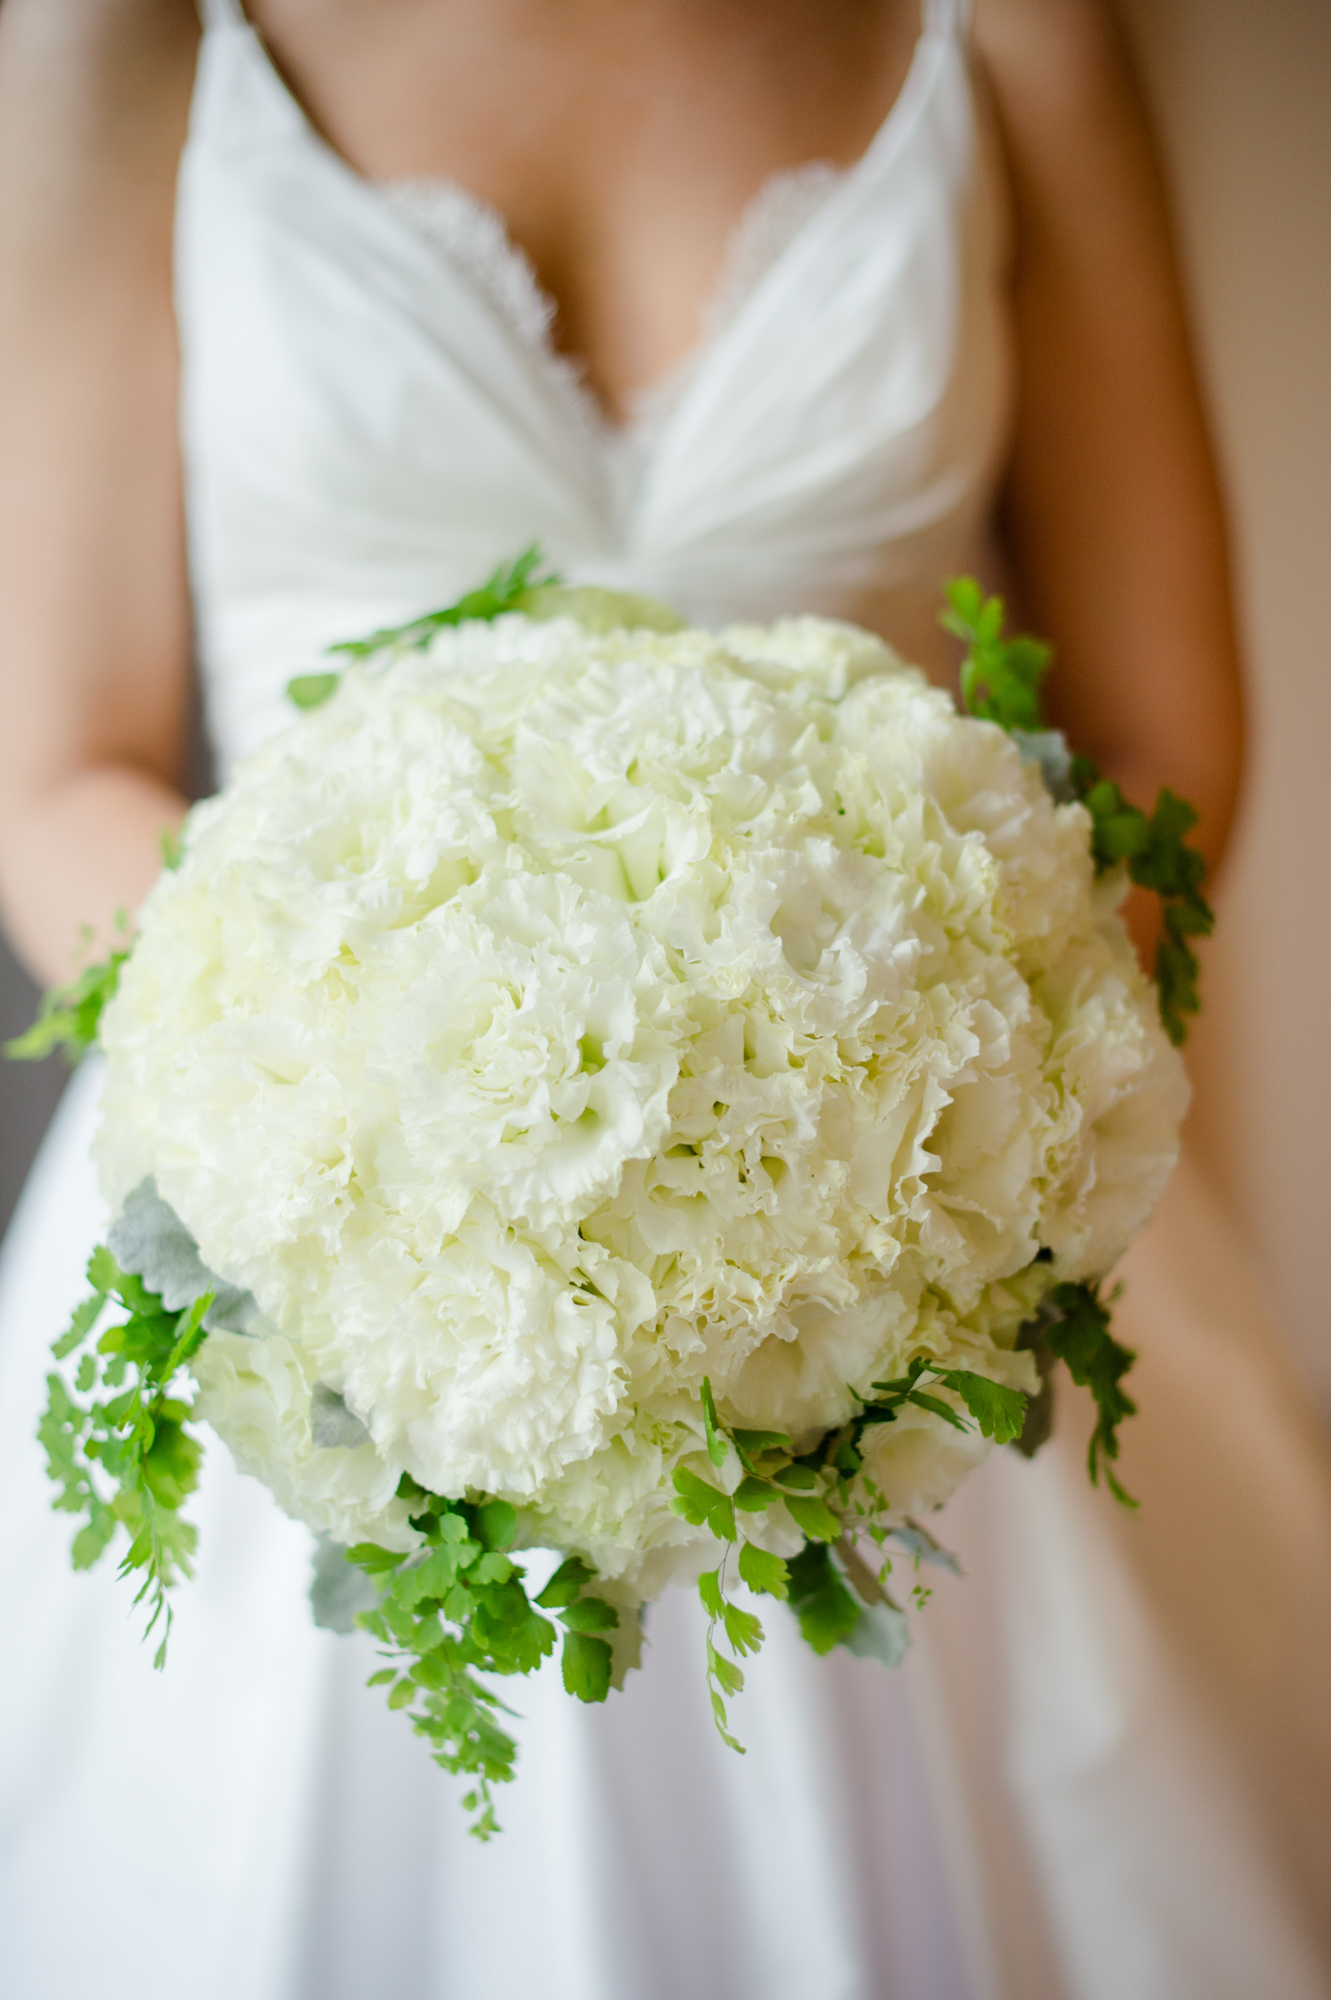 Bride's bouquet by Fragrant Design for Morgan Manufacturing wedding